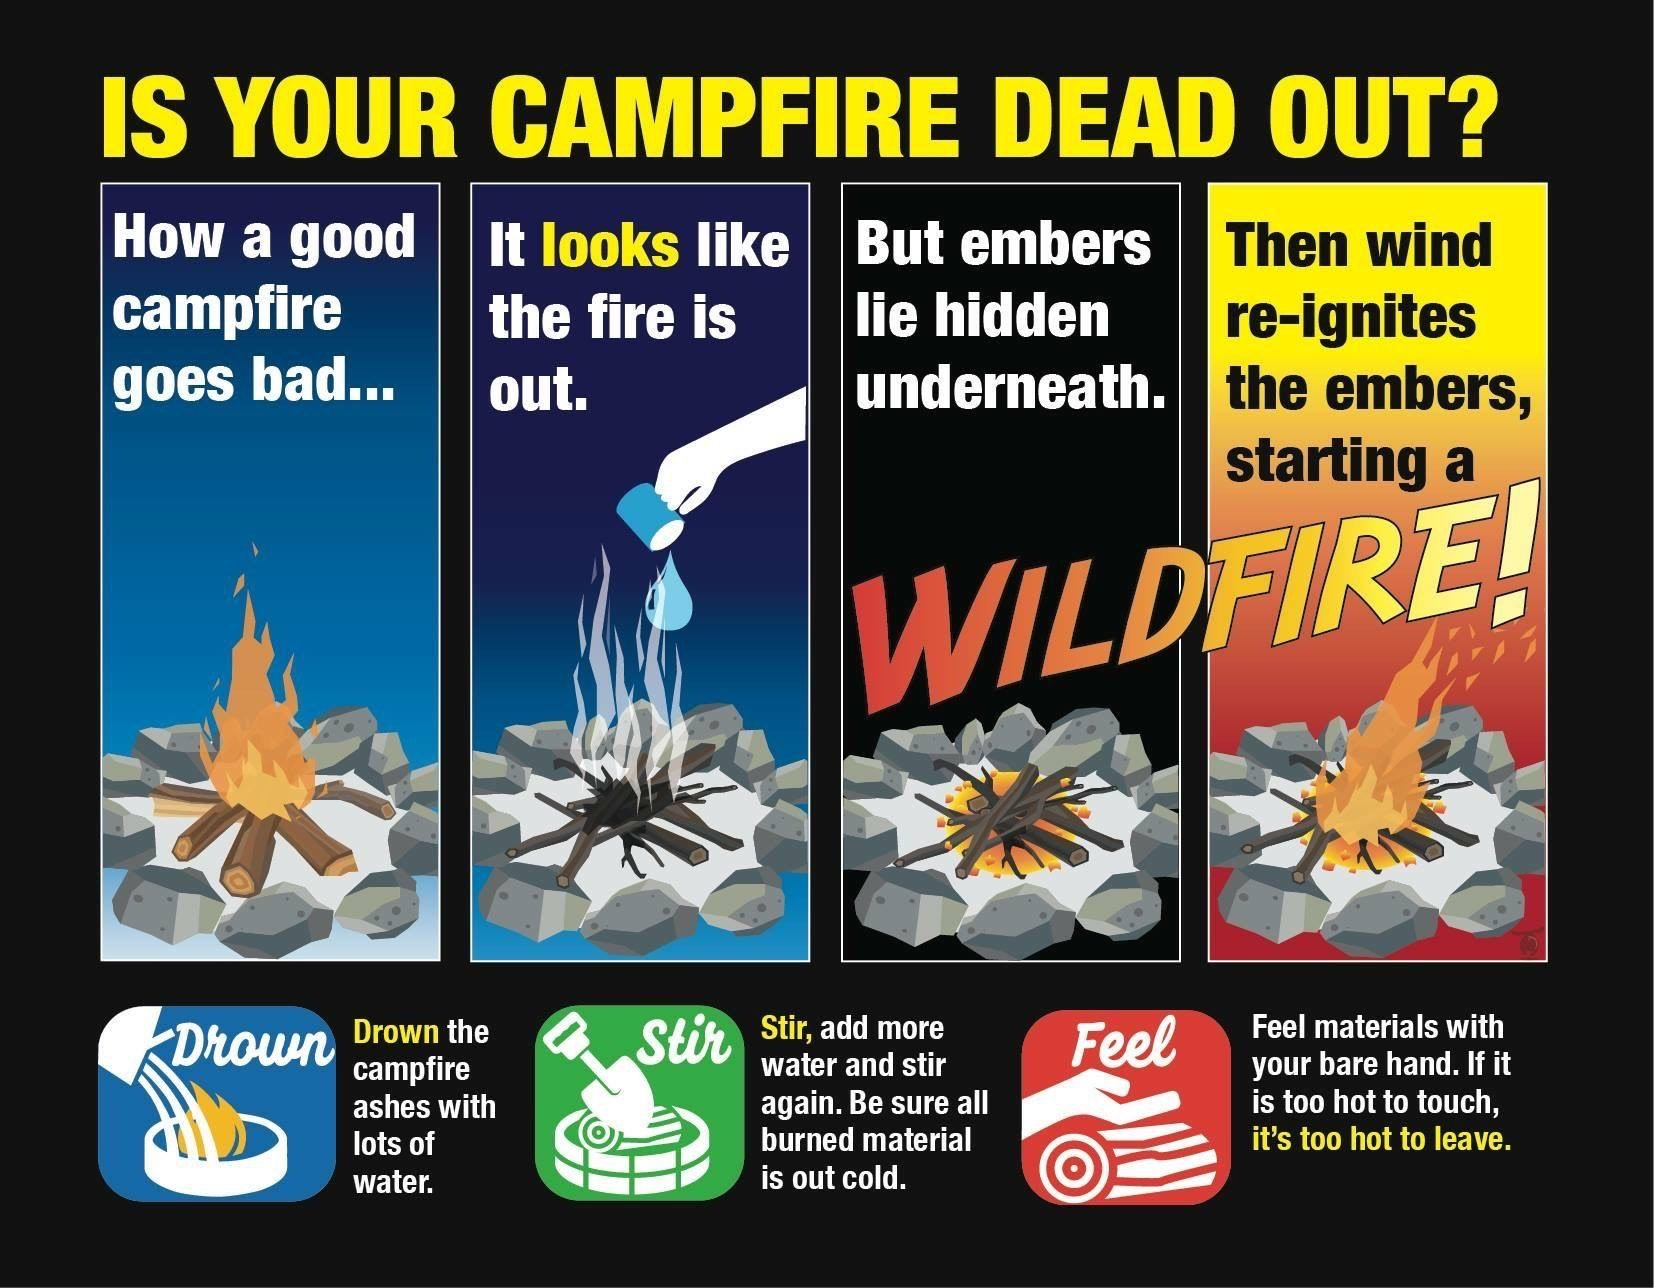 Campfire tips